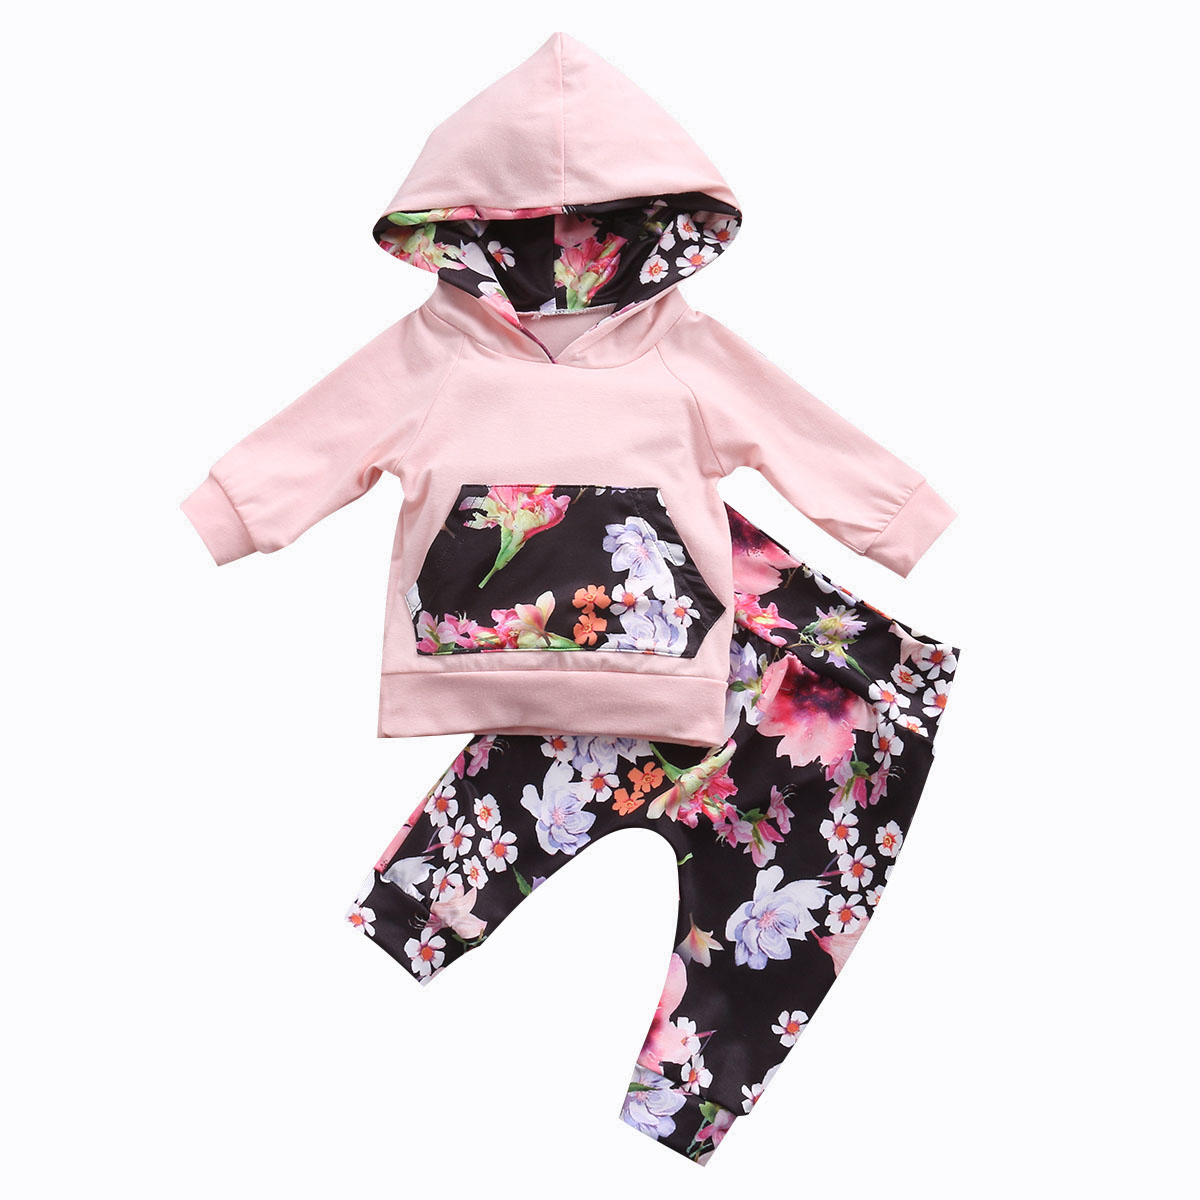 Cute Newborn Baby 2PCS Jumper Hooded Coat Tops+Floral Pants Outfit Clothing Spring Fall New Kids Infant Baby Girls Clothes Sets camouflage newborn baby boys clothes infant kids casual t shirt tops pants 2pcs outfit children clothing set 0 24m